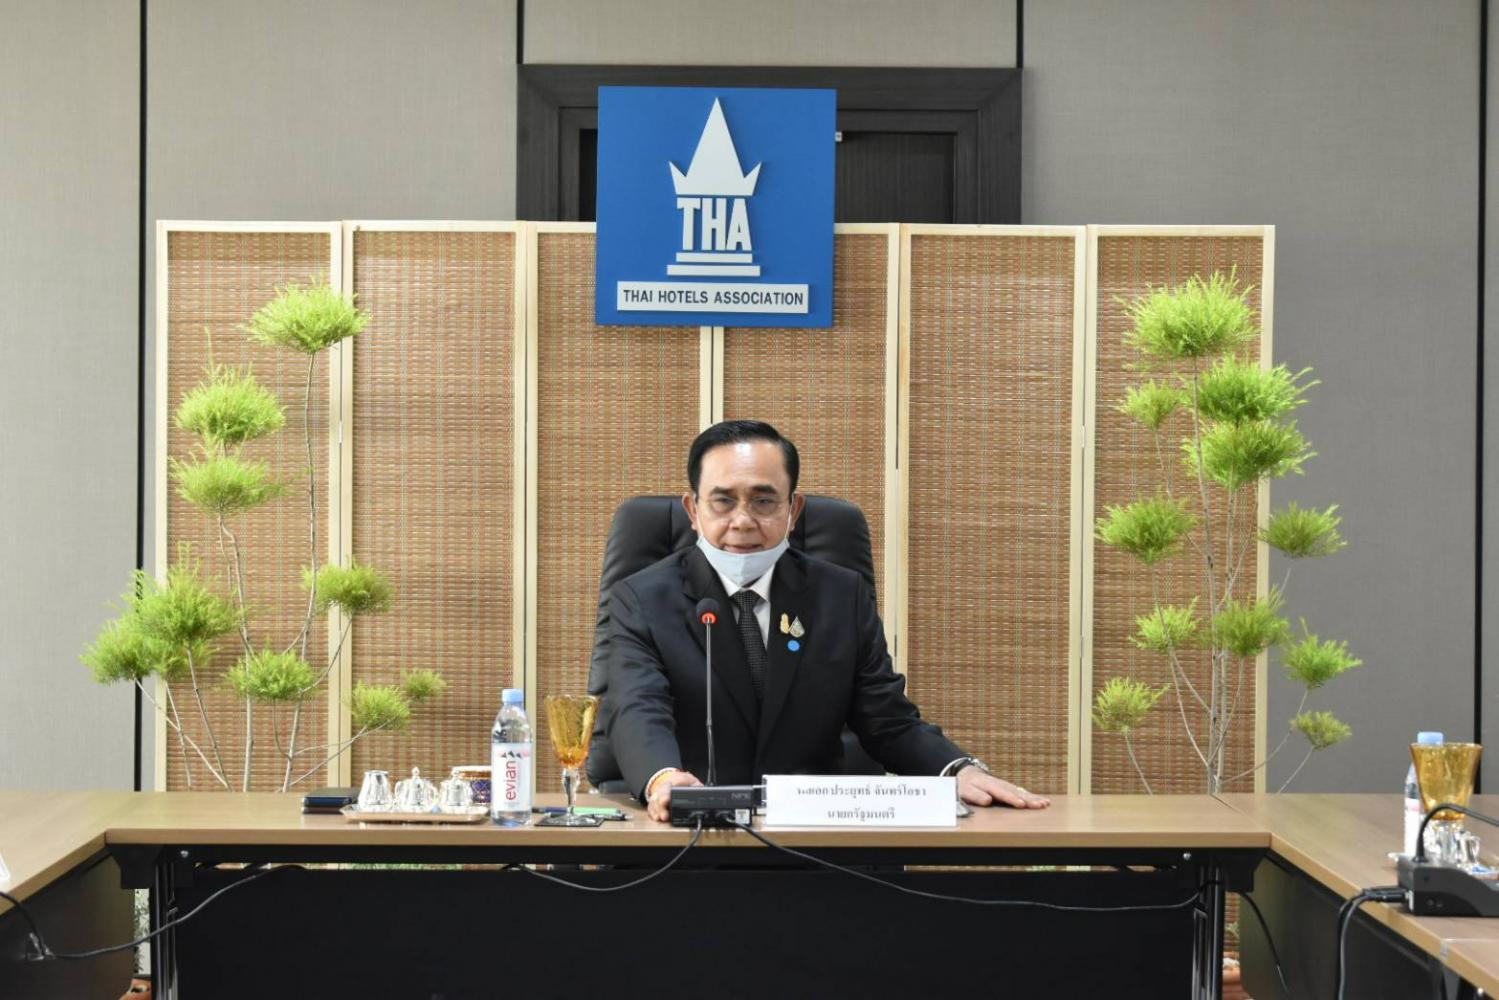 Prime Minister Prayut Chan-o-cha at a meeting with the Thai Hotels Association for hearing suggestion from private sector.